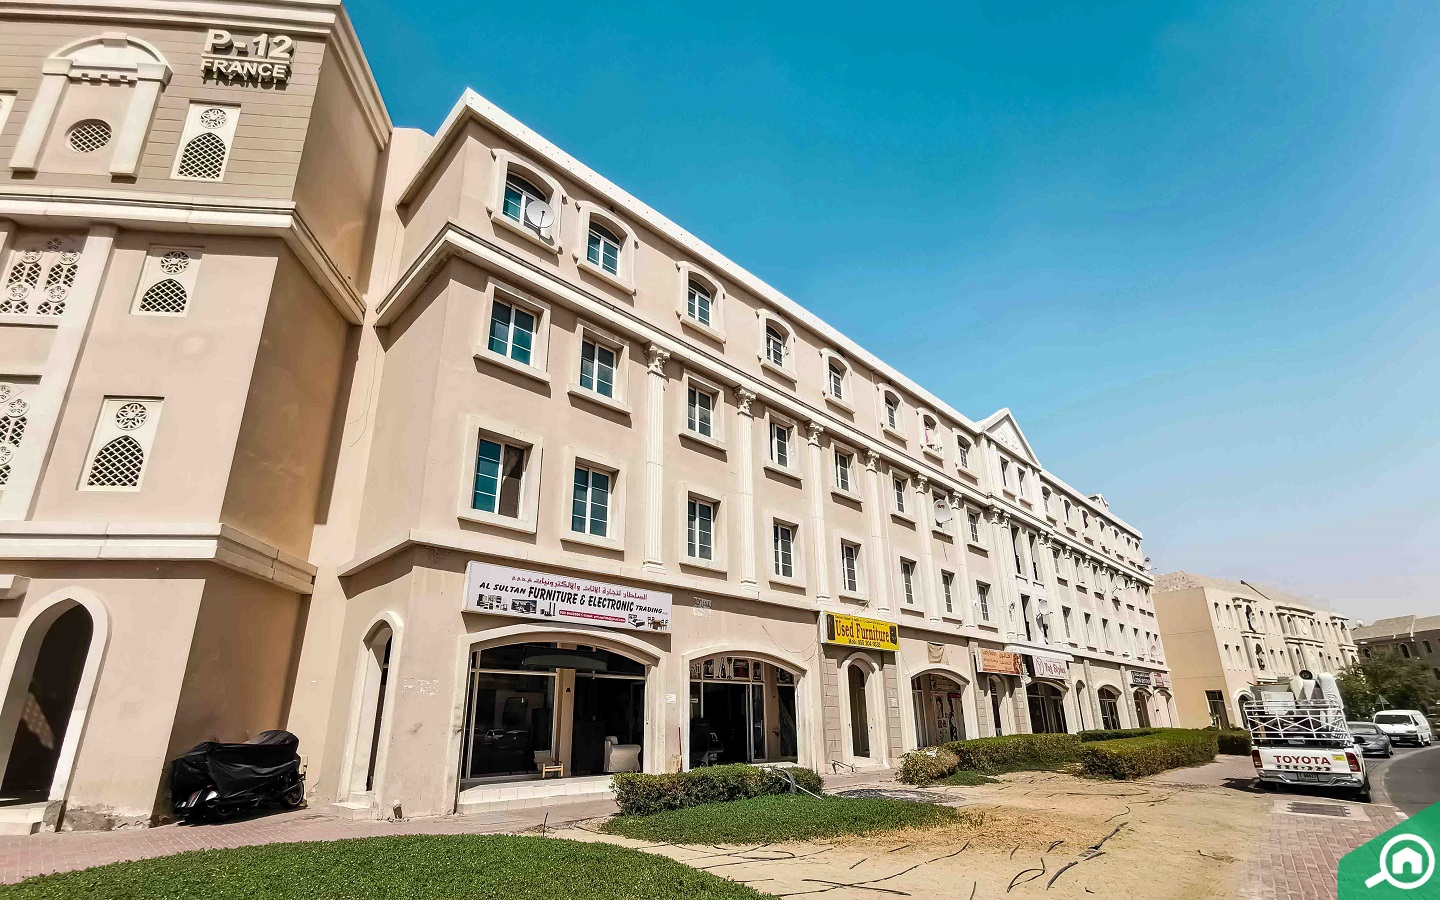 Best International City clusters for buying apartments